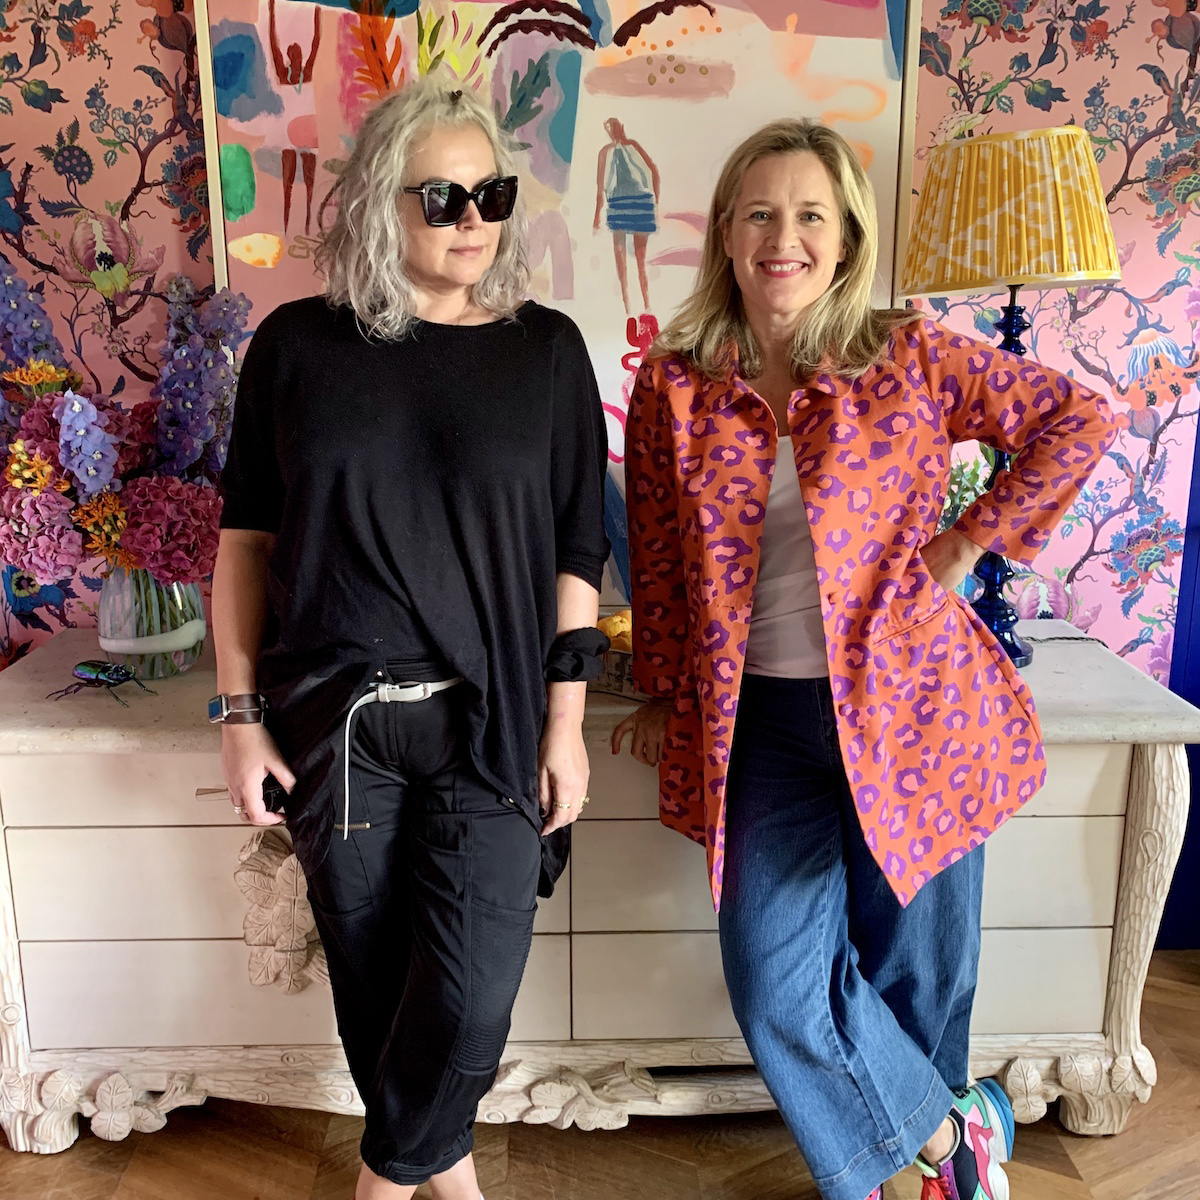 Kate Watson-Smyth and Sophie Robinson in Sophie's home office with bold pink floral wallpaper and large vintage sideboard.